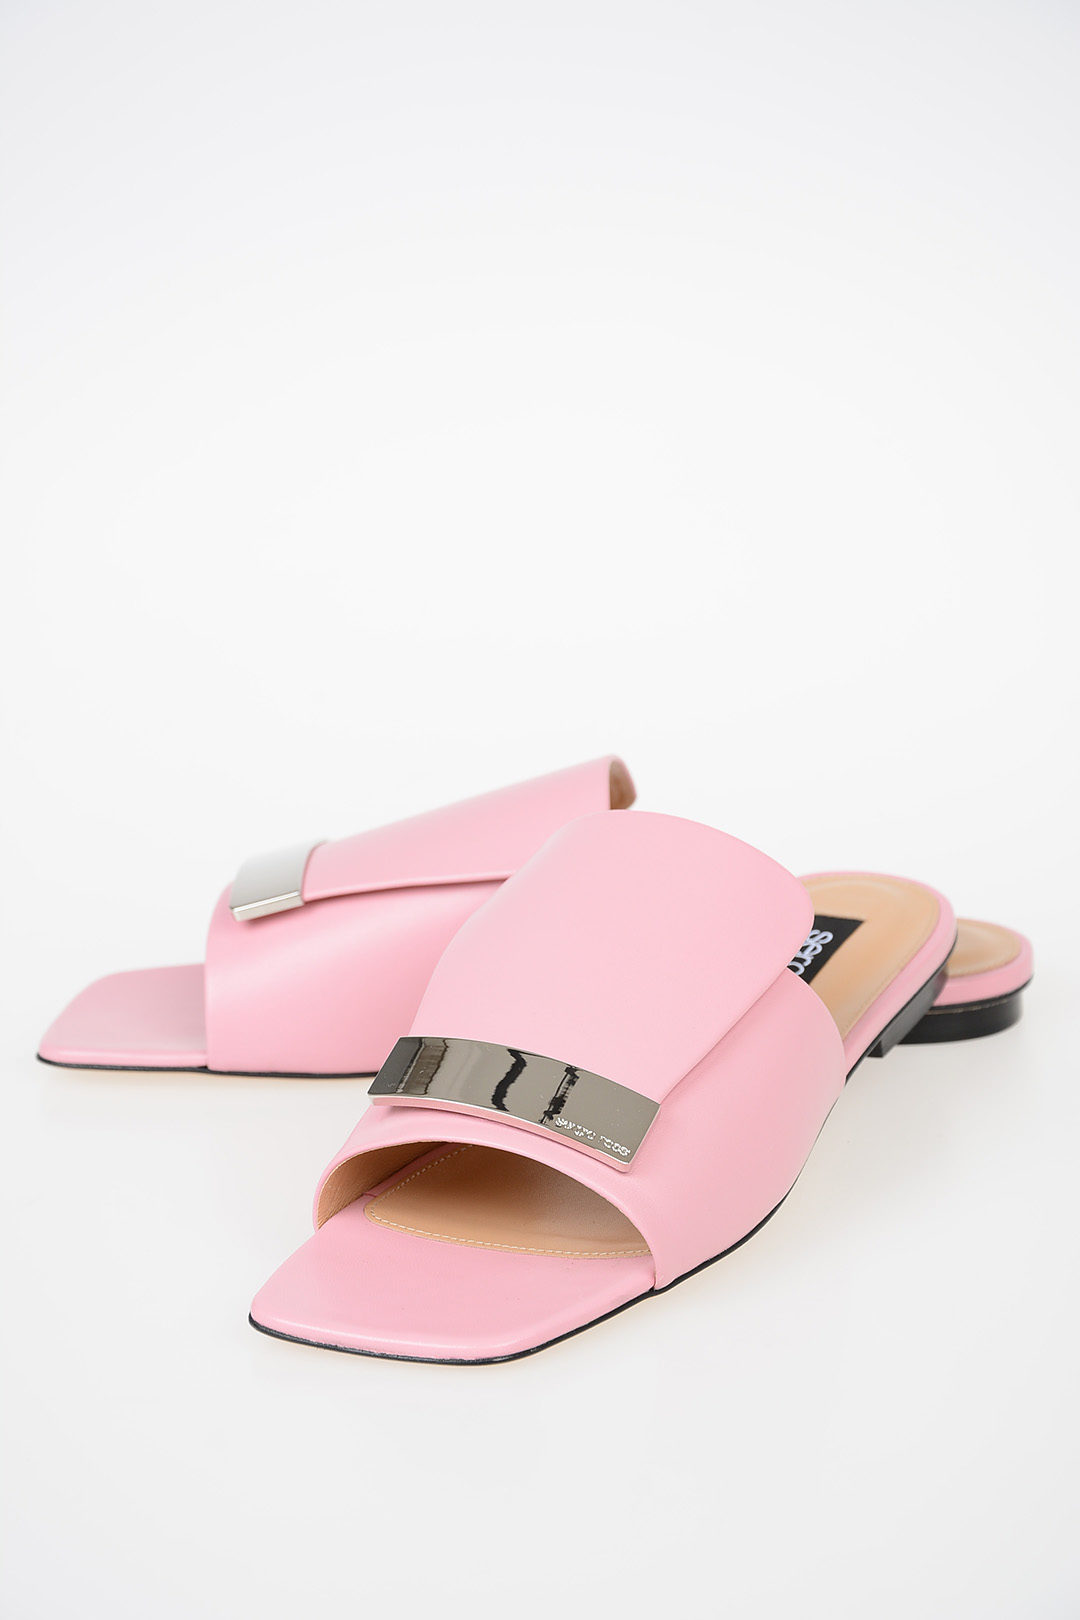 142ad6525 Sergio Rossi Leather Sandals women - Glamood Outlet